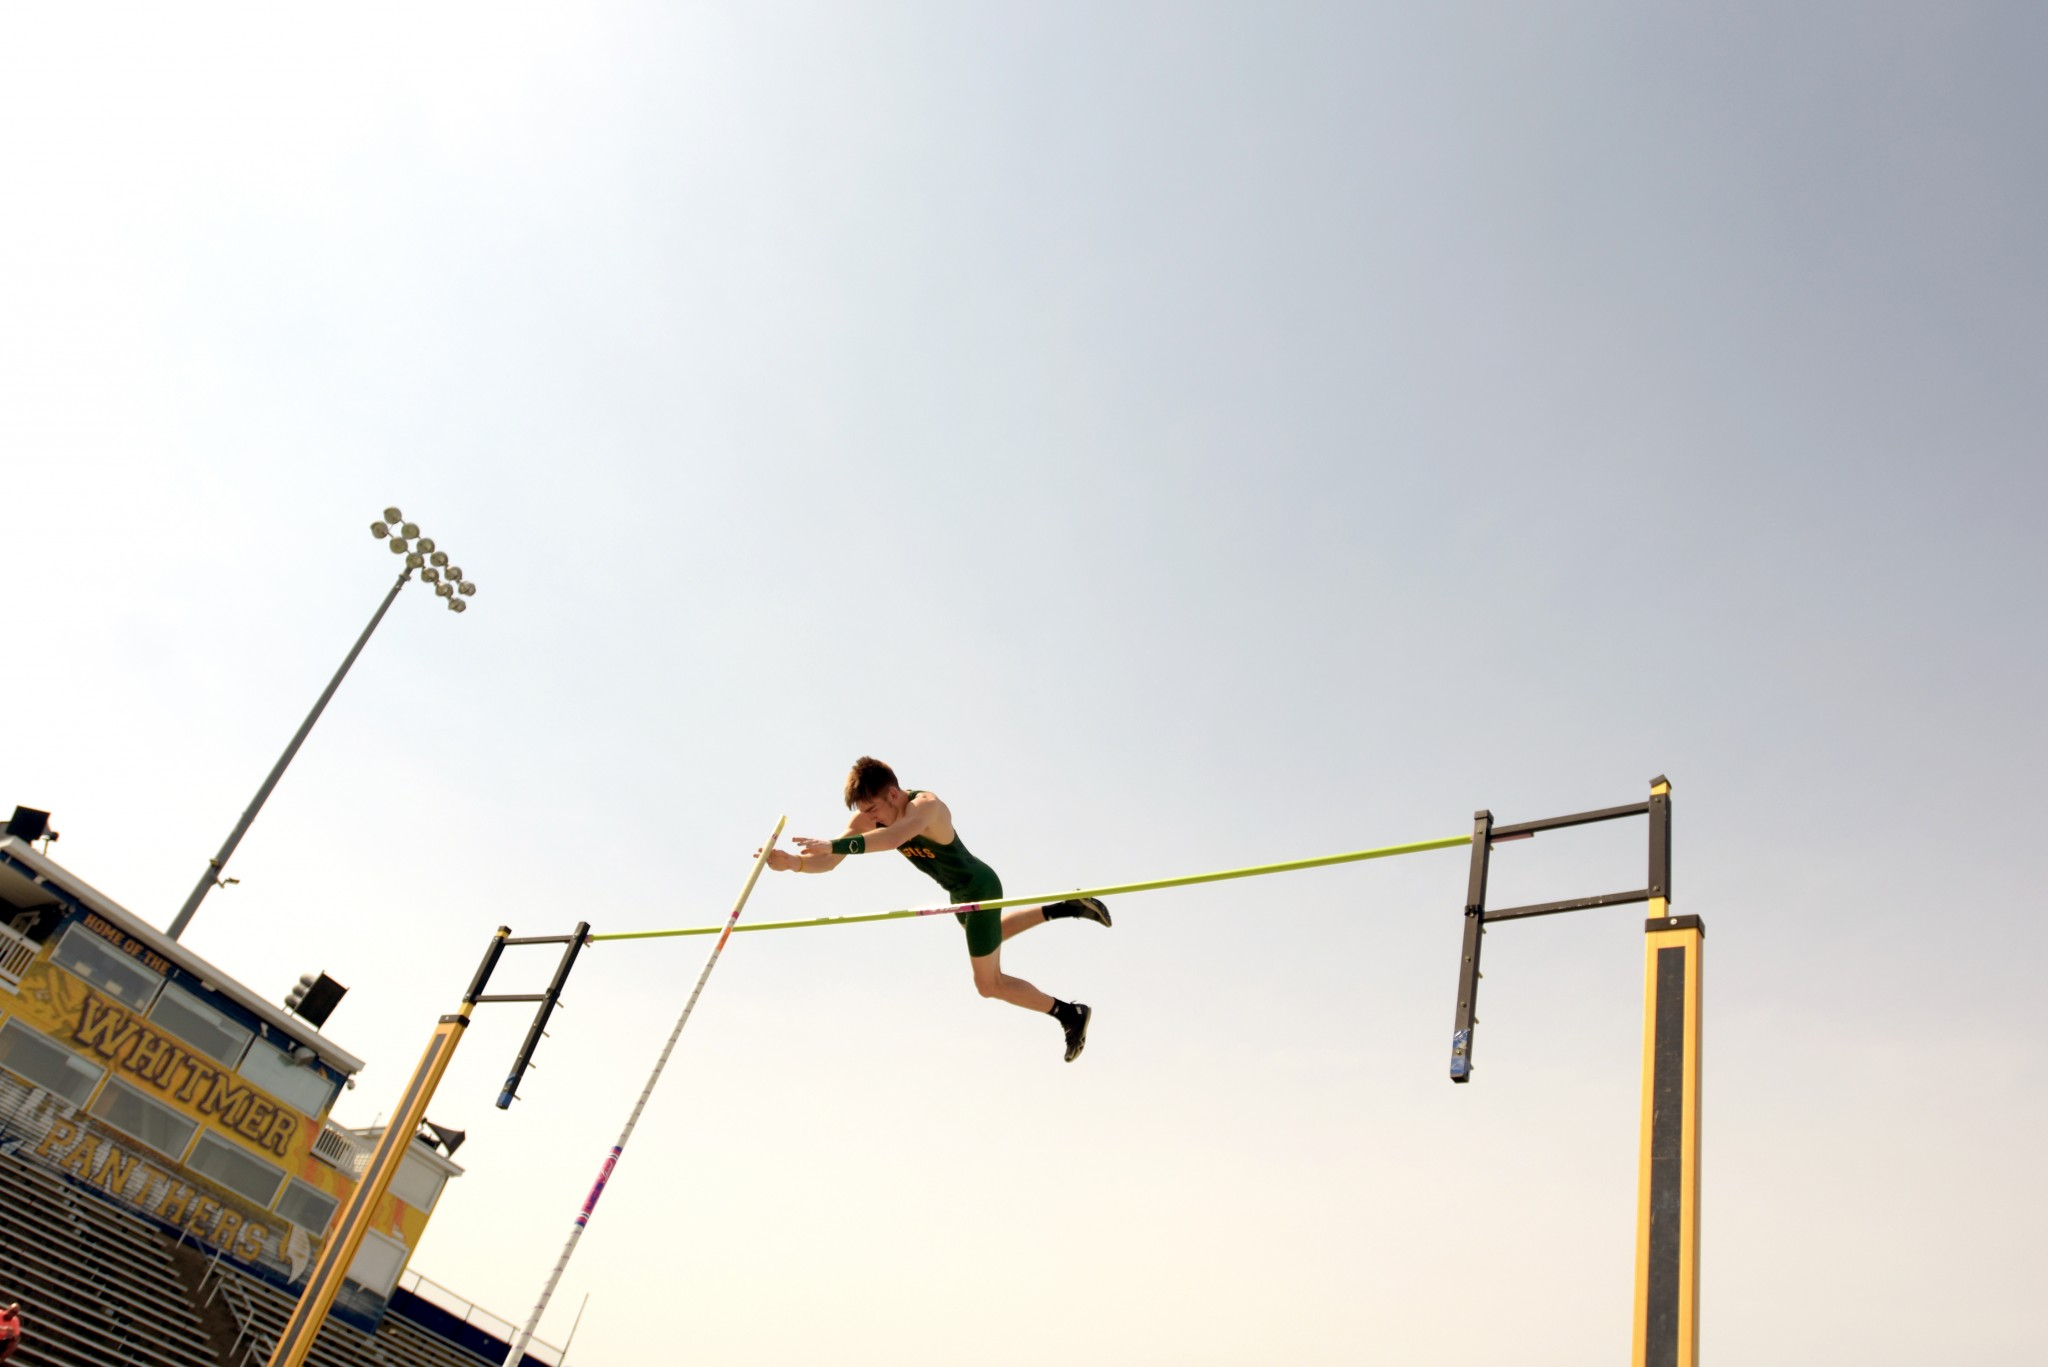 Clay state pole vault qualifier Andrew Mawhorter. (Photo by Clay yearbook staff member)